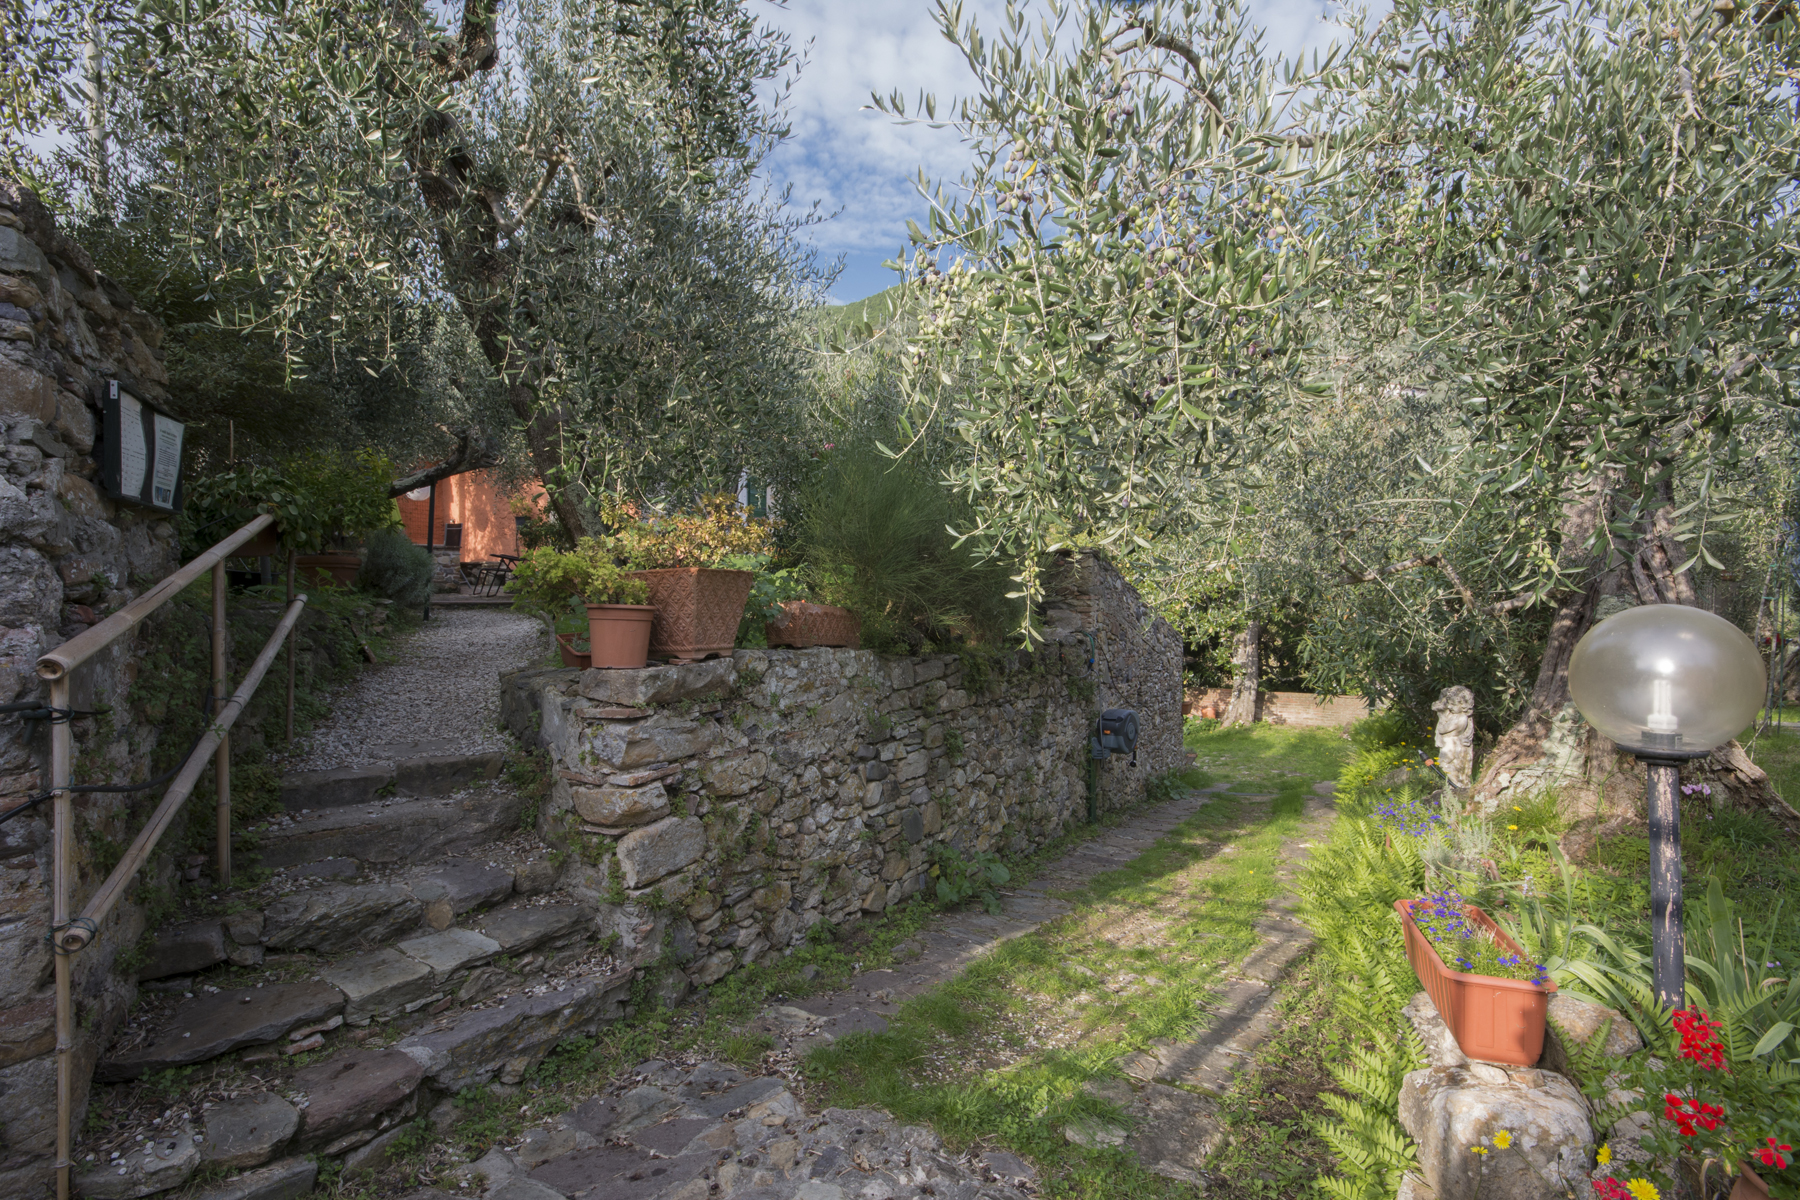 Additional photo for property listing at Antique  moulin à huile dans la campagne Toscane Via del Campaccio Buti, Pisa 56032 Italie